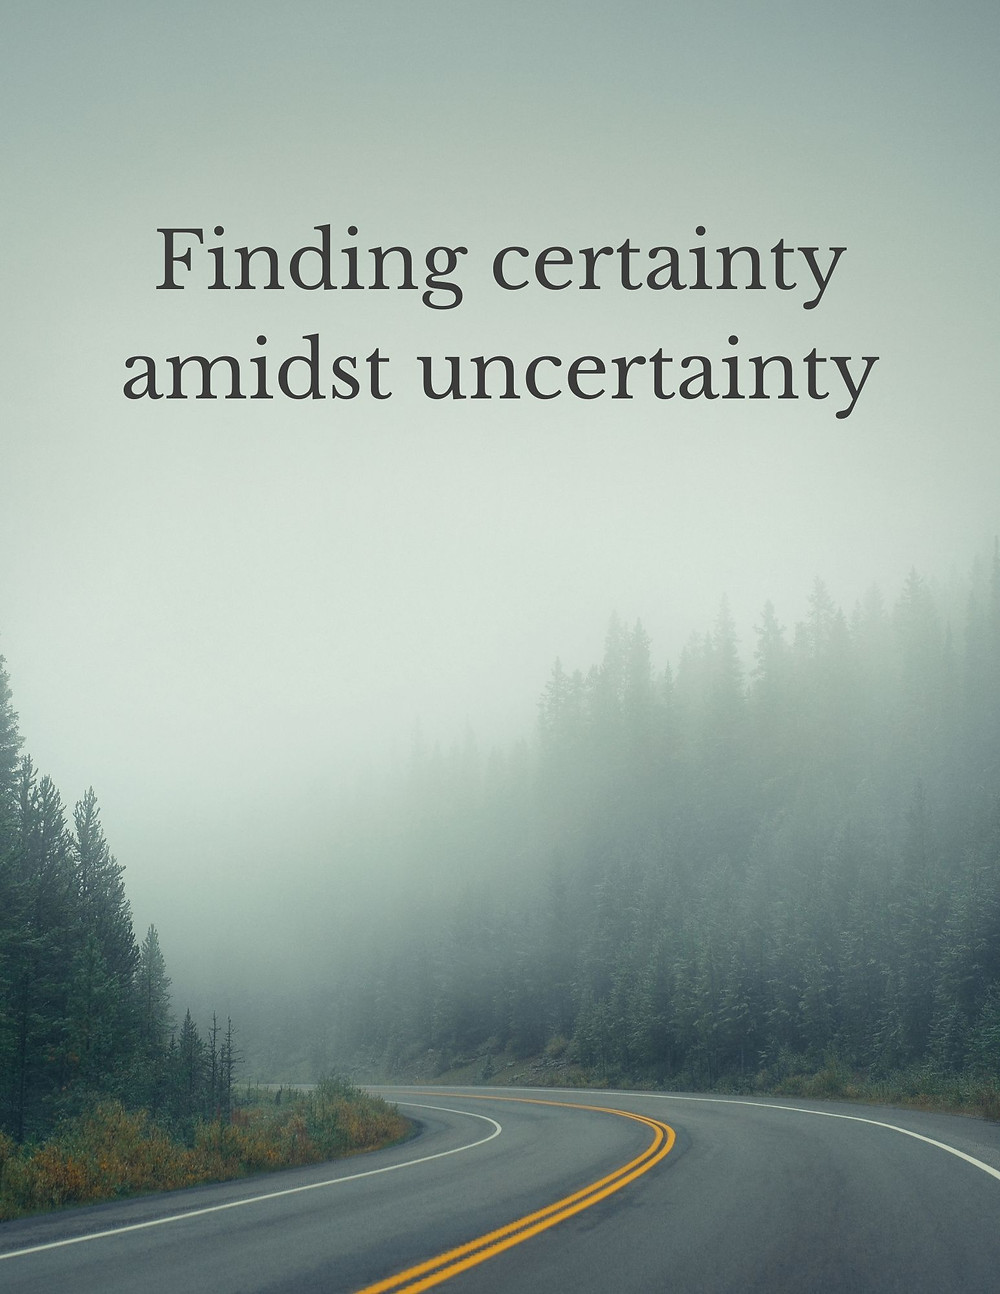 Finding certainty amidst uncertainty